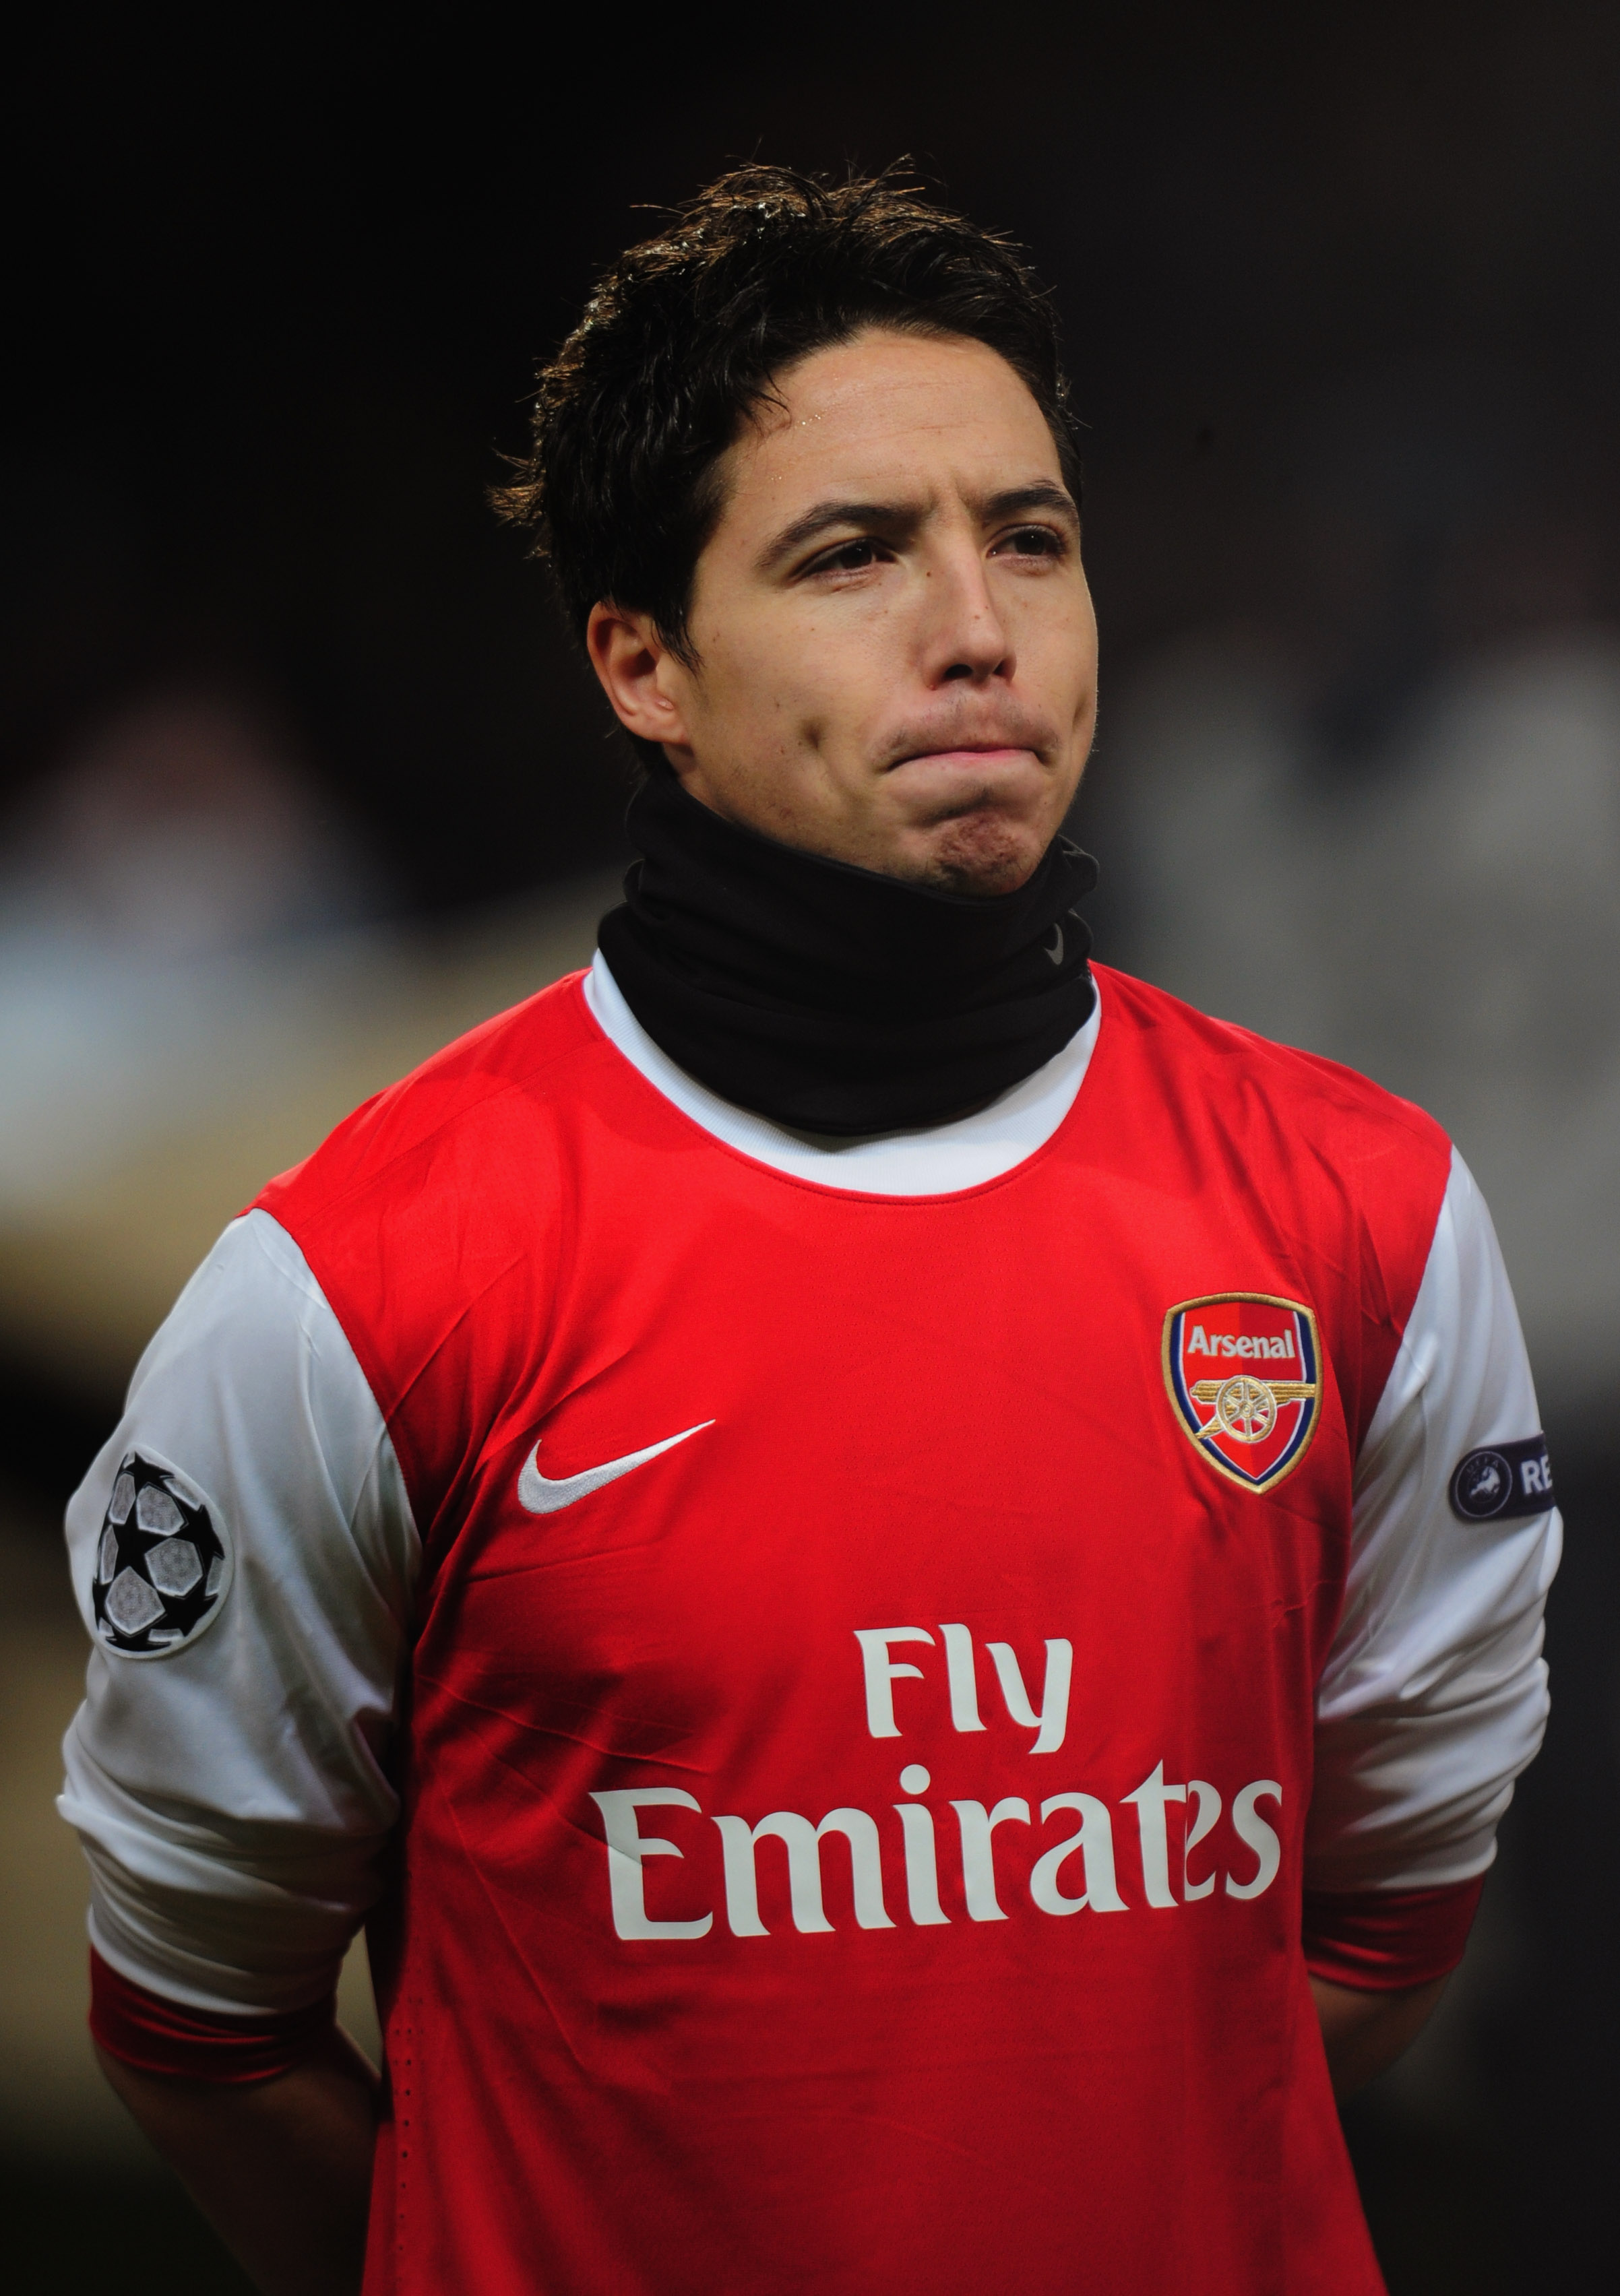 LONDON, ENGLAND - DECEMBER 08:  Samir Nasri of Arsenal looks on prior to the UEFA Champions League Group H match between Arsenal and FK Partizan Belgrade at the Emirates Stadium on December 8, 2010 in London, England.  (Photo by Shaun Botterill/Getty Imag